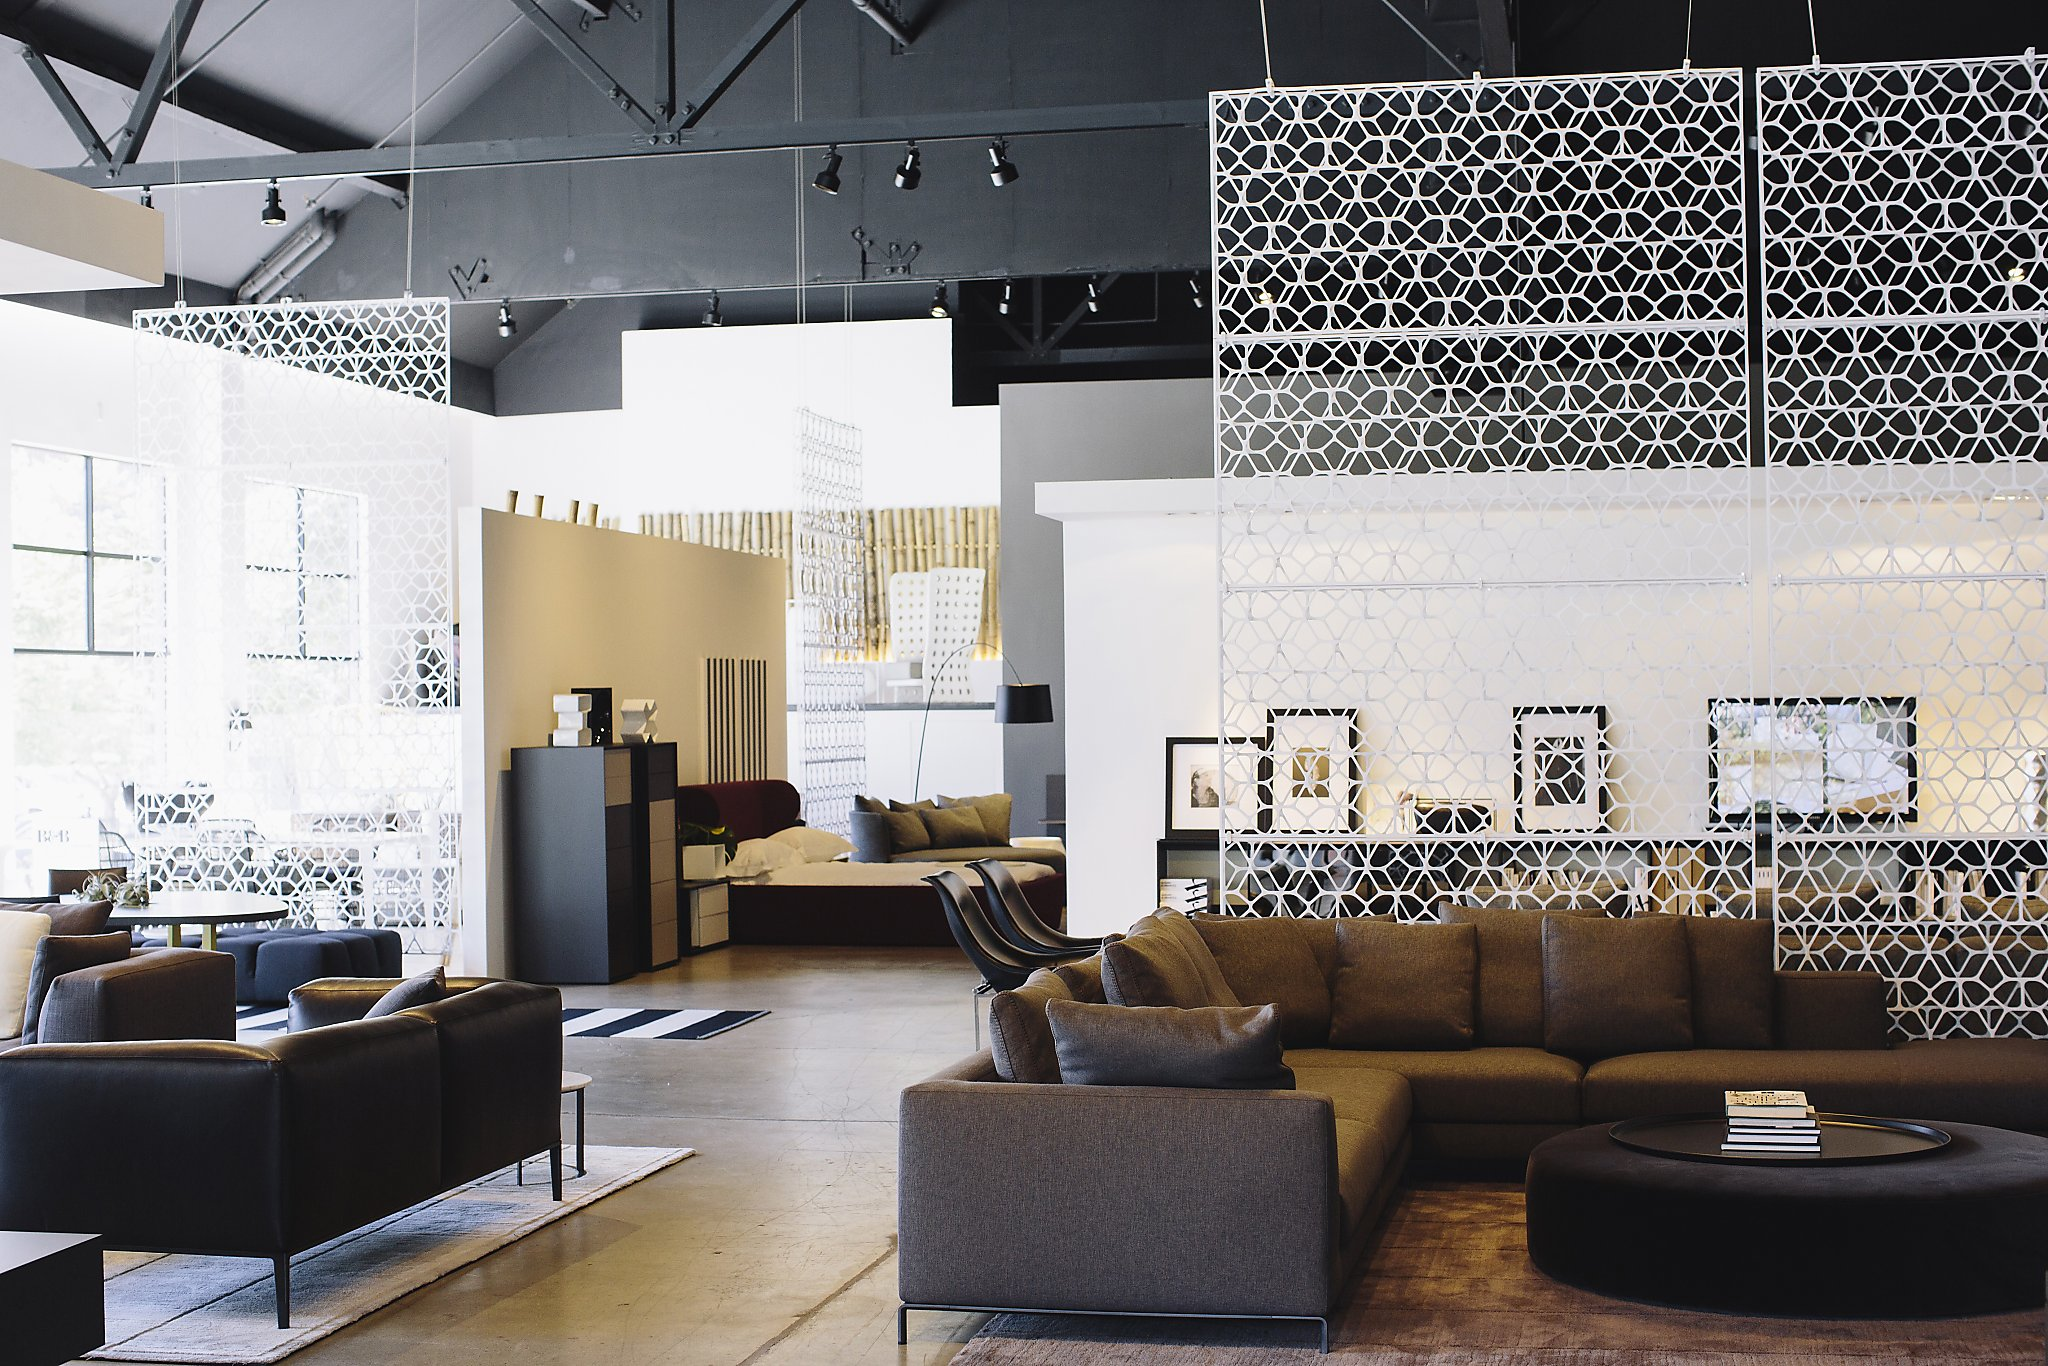 B&b Luxe Insider S Guide To The Design District Sfgate